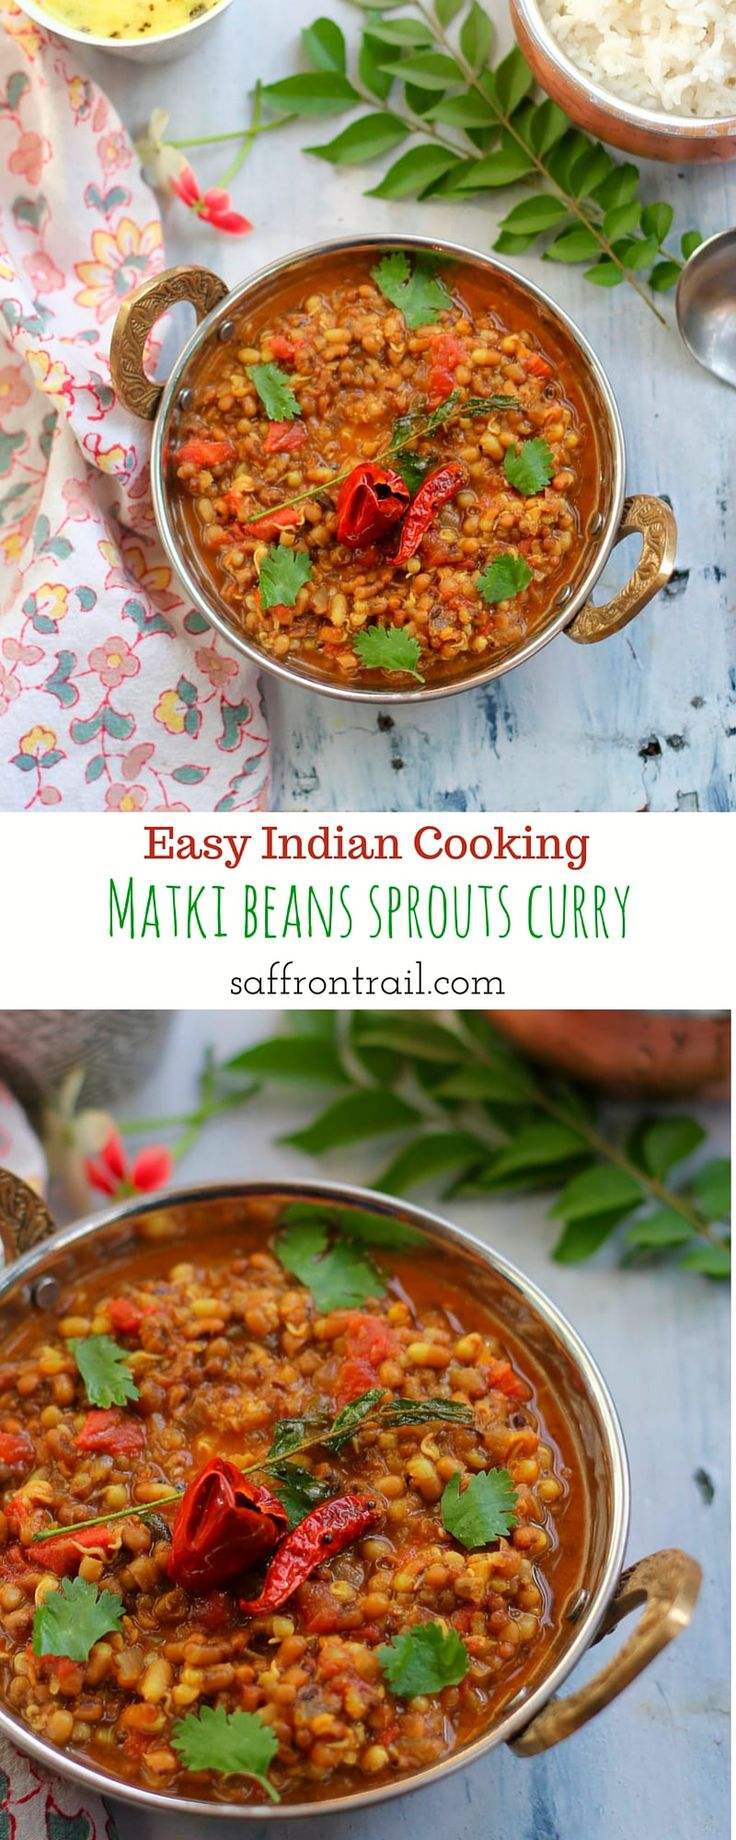 Easy Indian cooking - Indian Moth Beans (Matki) Sprouts Curry - Commonly known as Matkiमटकीin India, Muttमठ(in Gujarati), Moth beans in English, these tiny beans are packed with flavour & texture, a delight to cook with. Get the recipe for Matki chi Usal - a simple curry made using these sprouts.